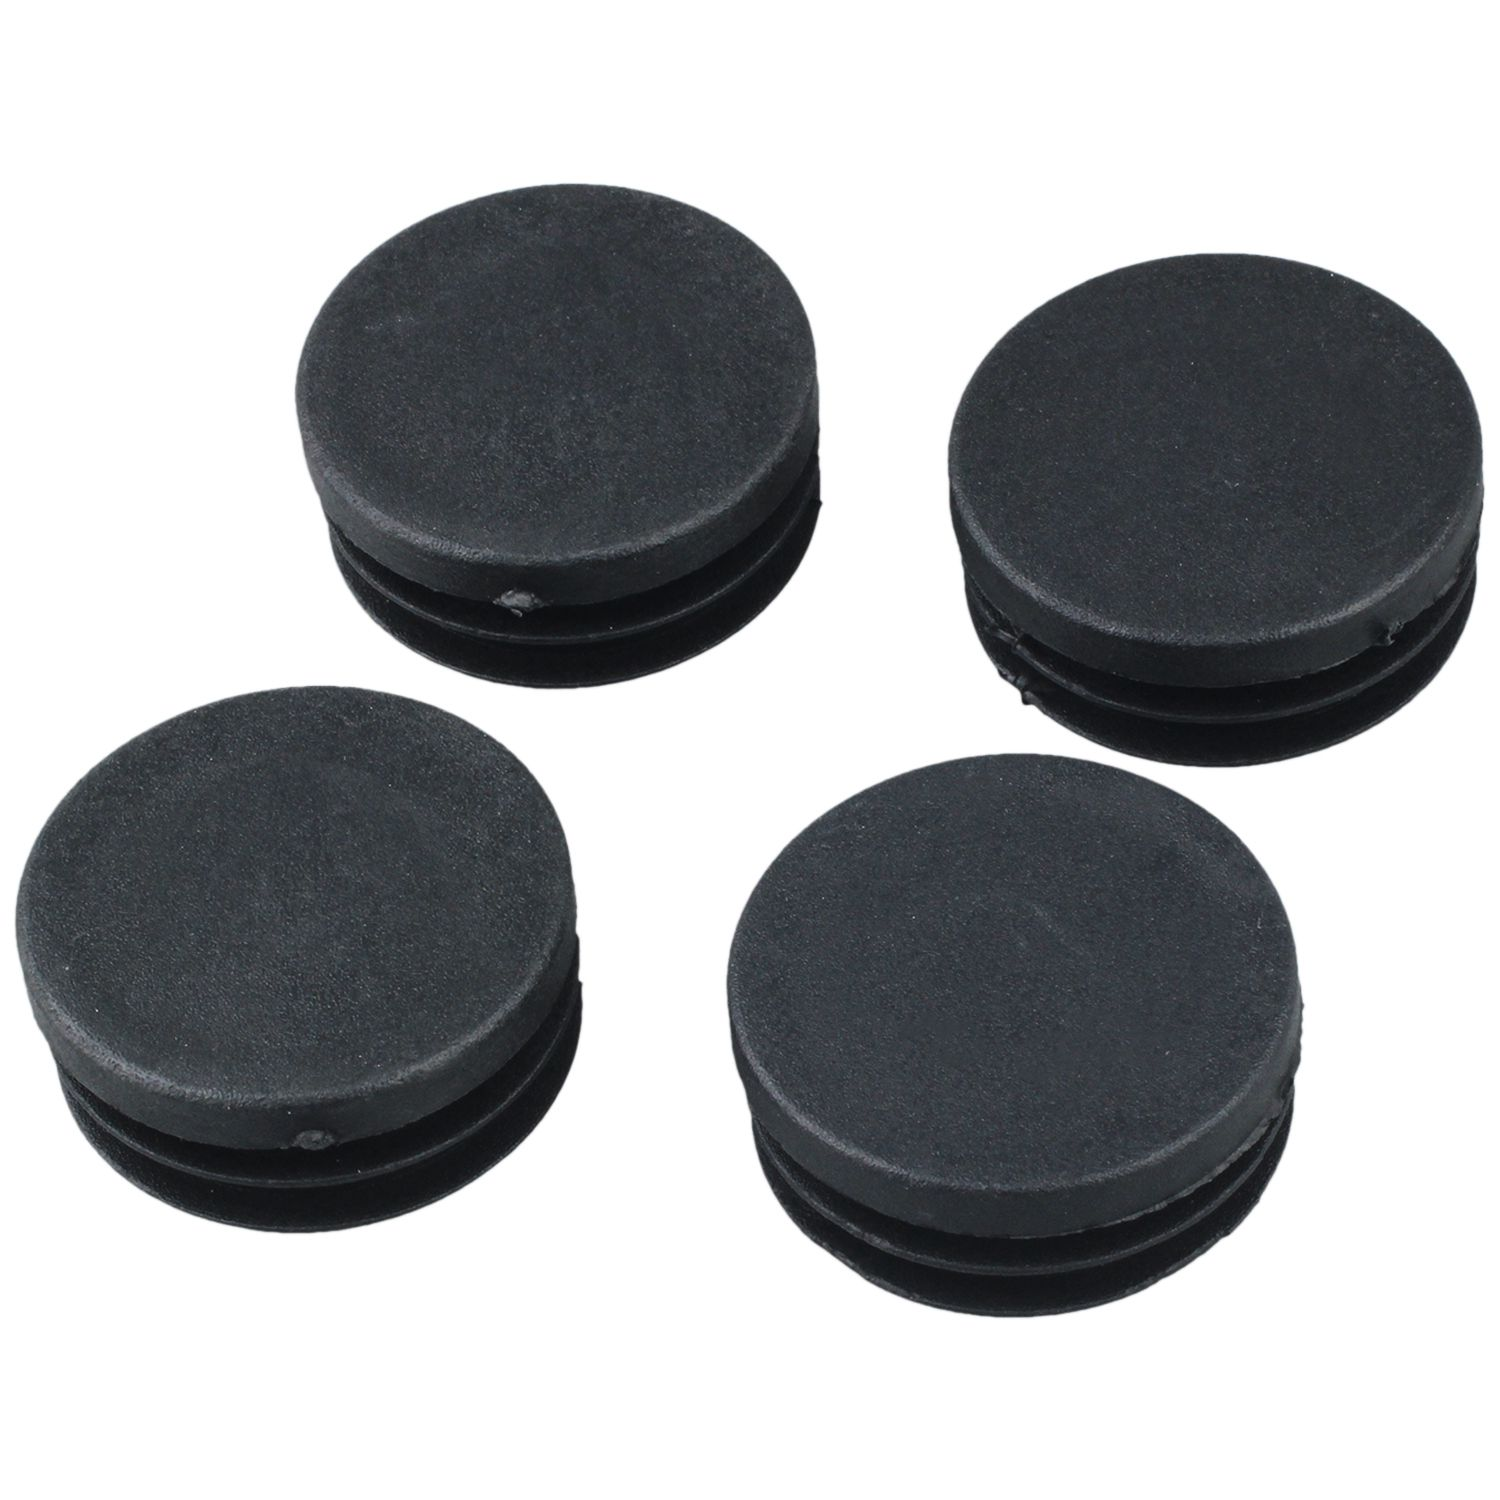 Hot Sale 4 Pcs Black Plastic 40mm Dia Round Tubing Tube Insert Caps Covers